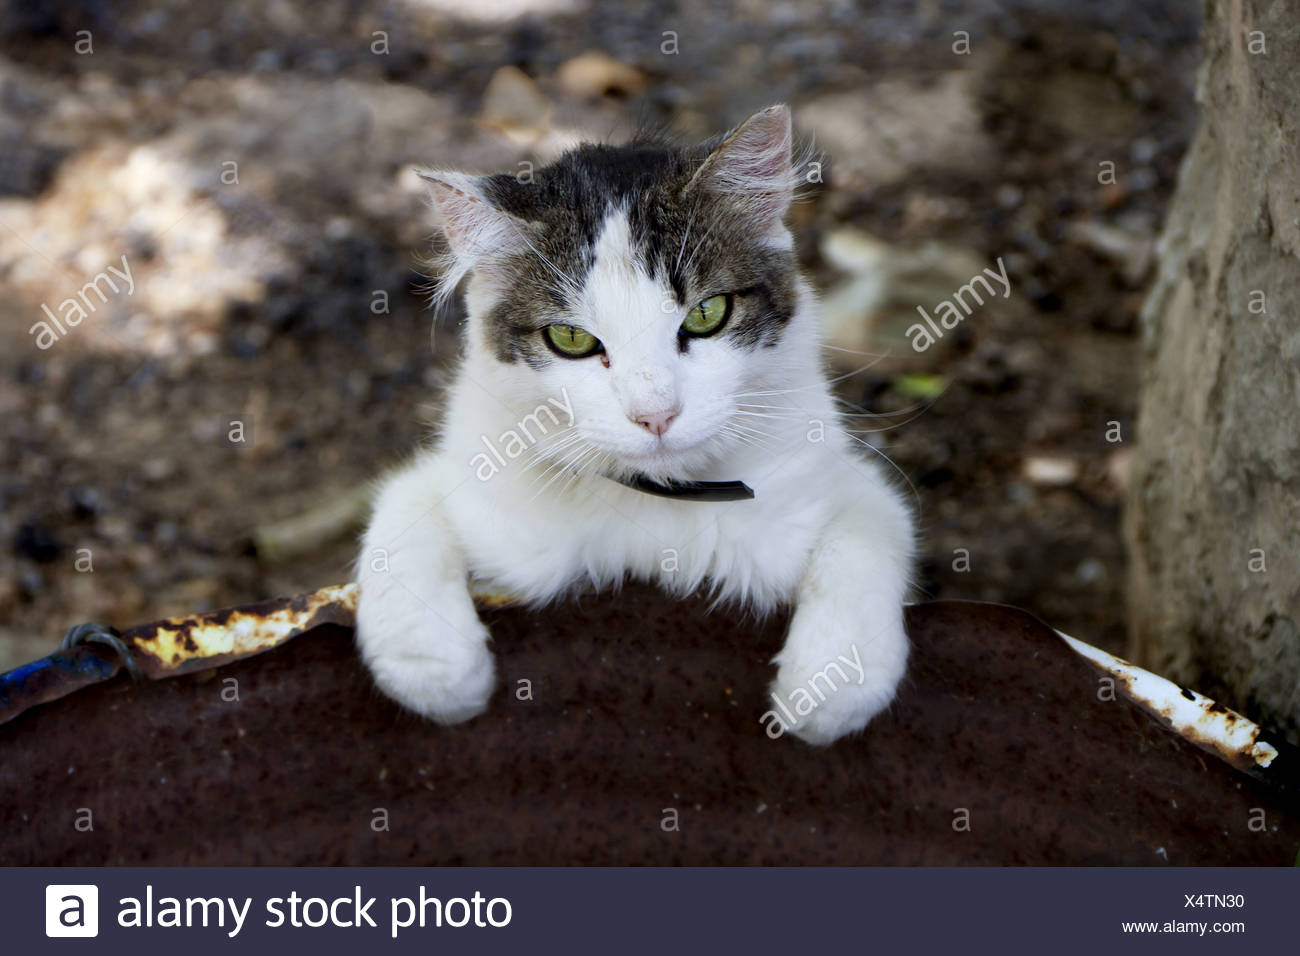 cat at expedition Stock Photo